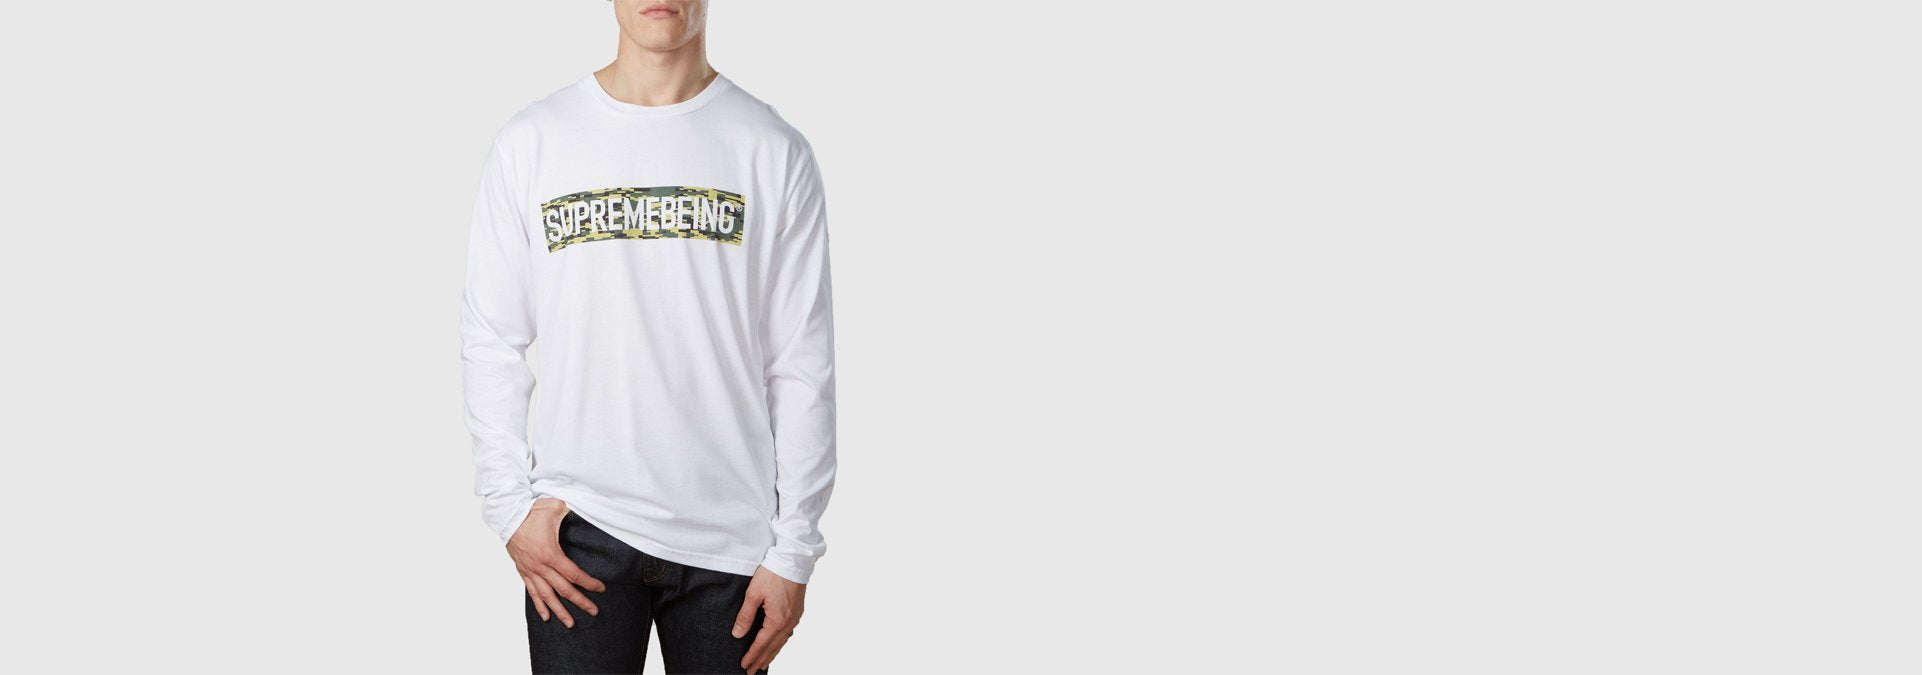 Supremebeing Camouflage Background L/S T-Shirt White